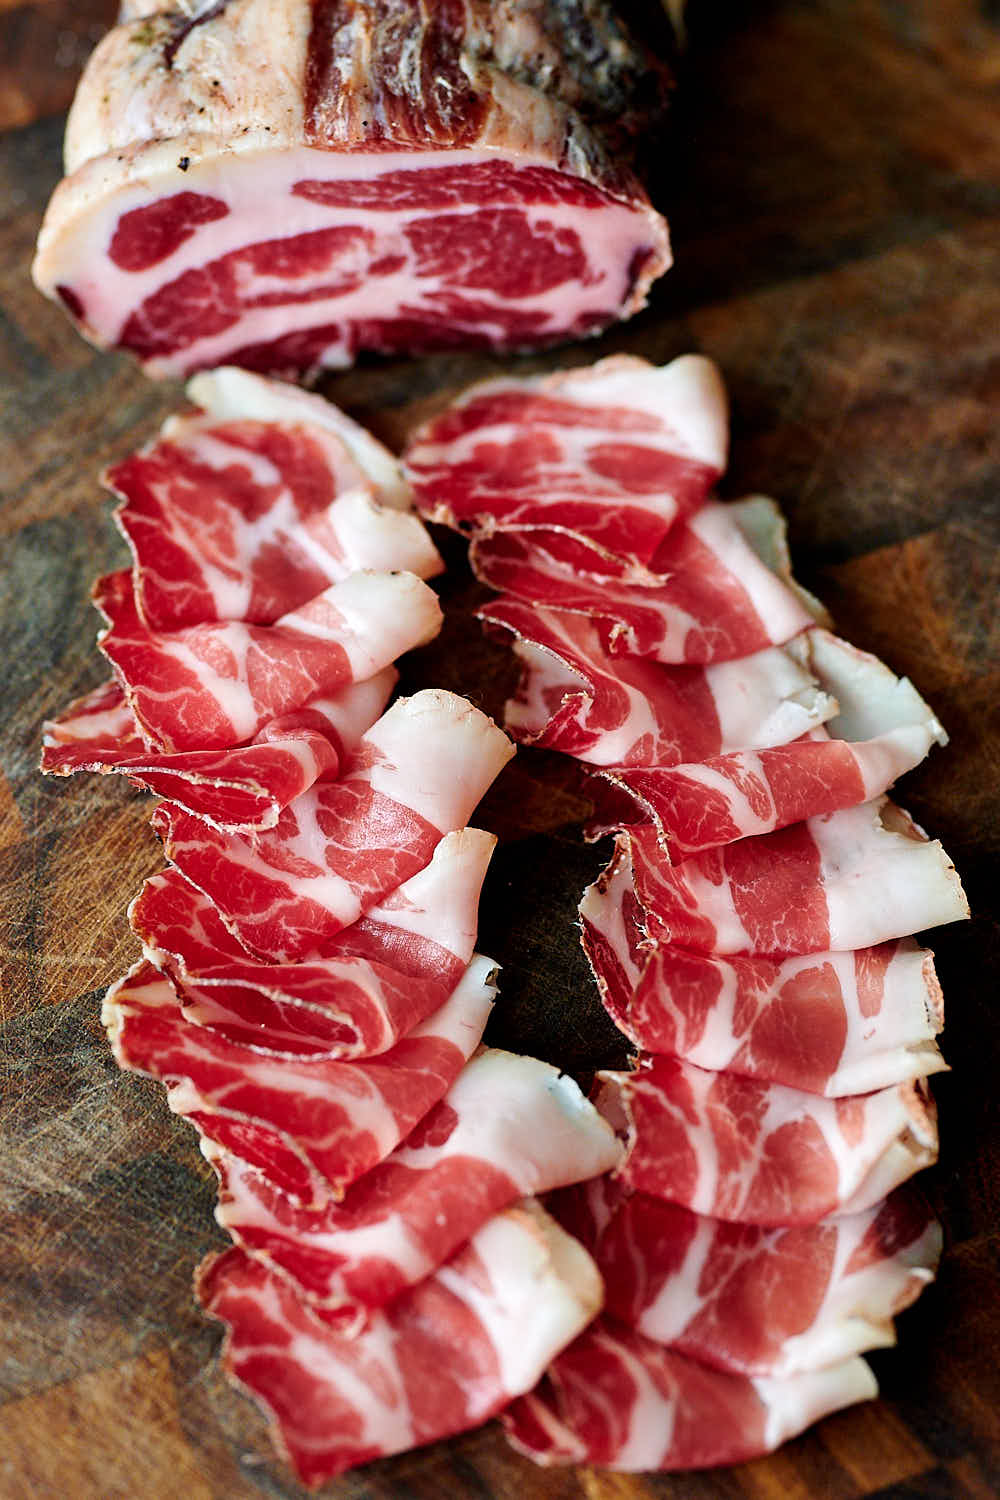 Sliced capicola on a wooden board.